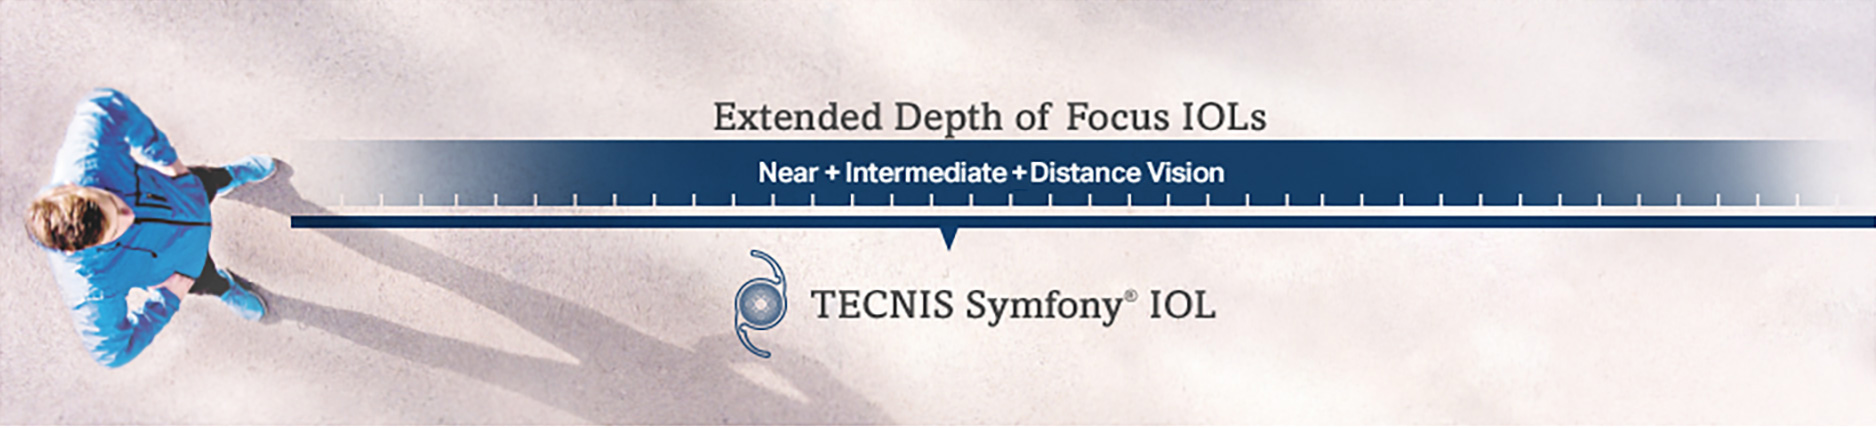 Man showing extended depth of focus for near, intermediate, and distance vision with TECNIS® Symfony® IOL